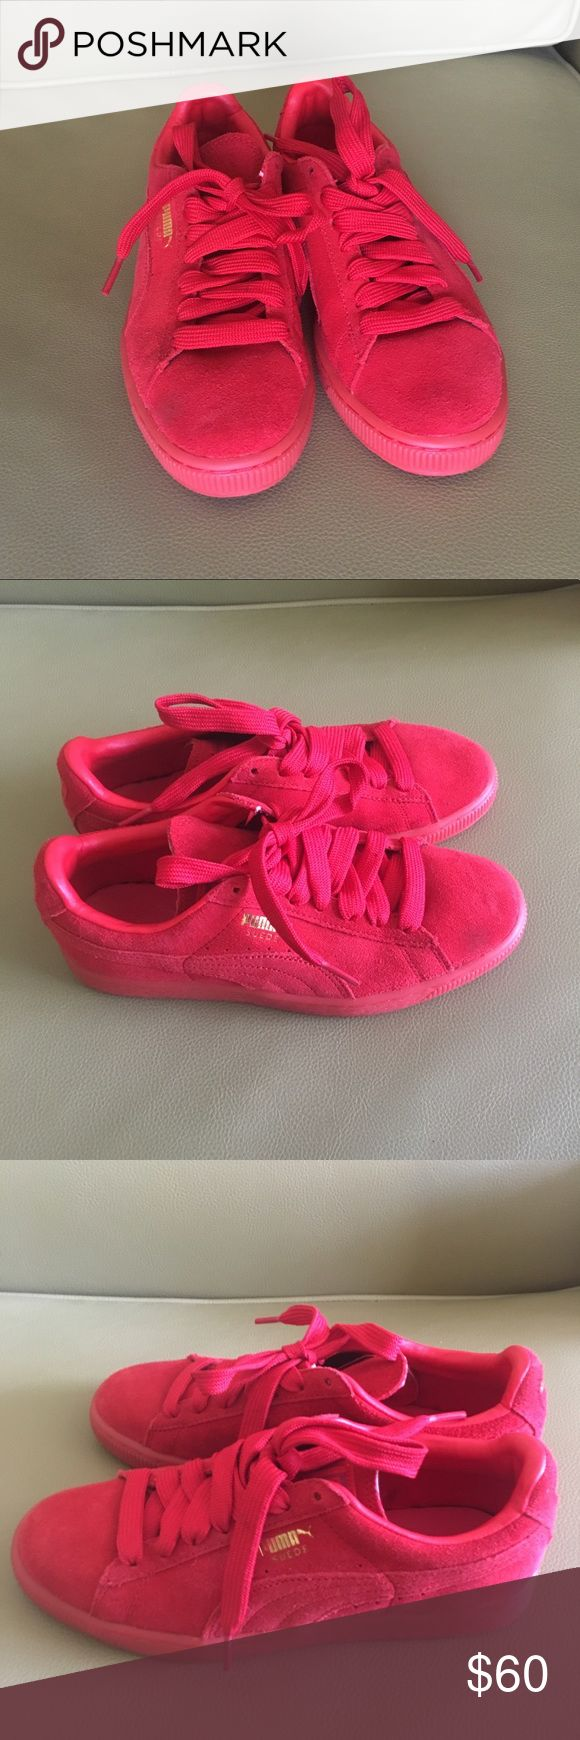 Puma Suede Classic + Mono Iced in Red Only worn once & fits up to a size 6. Look brand new. Puma Shoes Sneakers